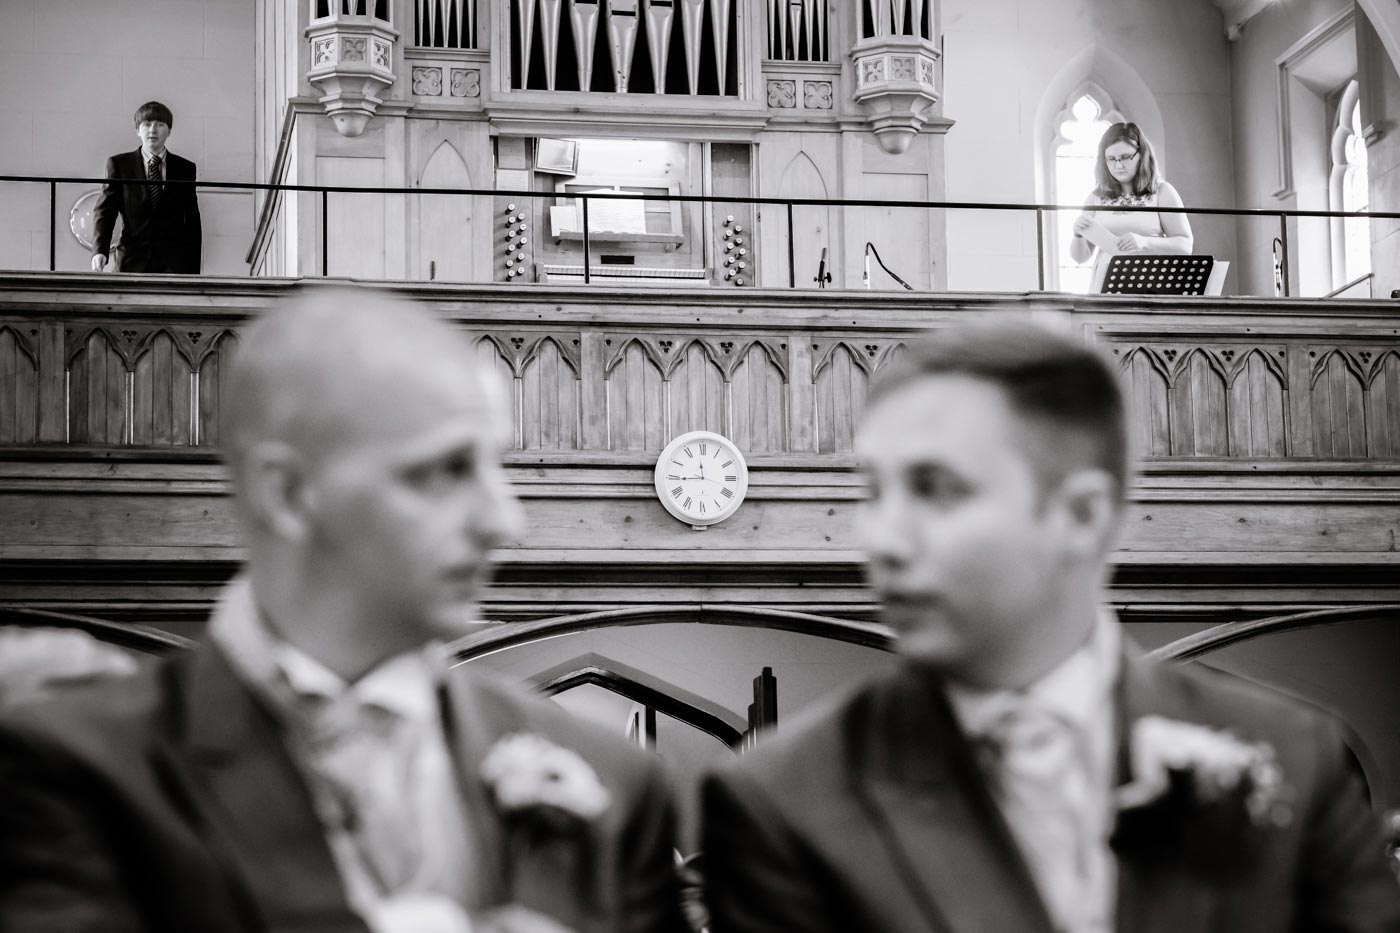 Groom and best man chatting while clock in focus in the background